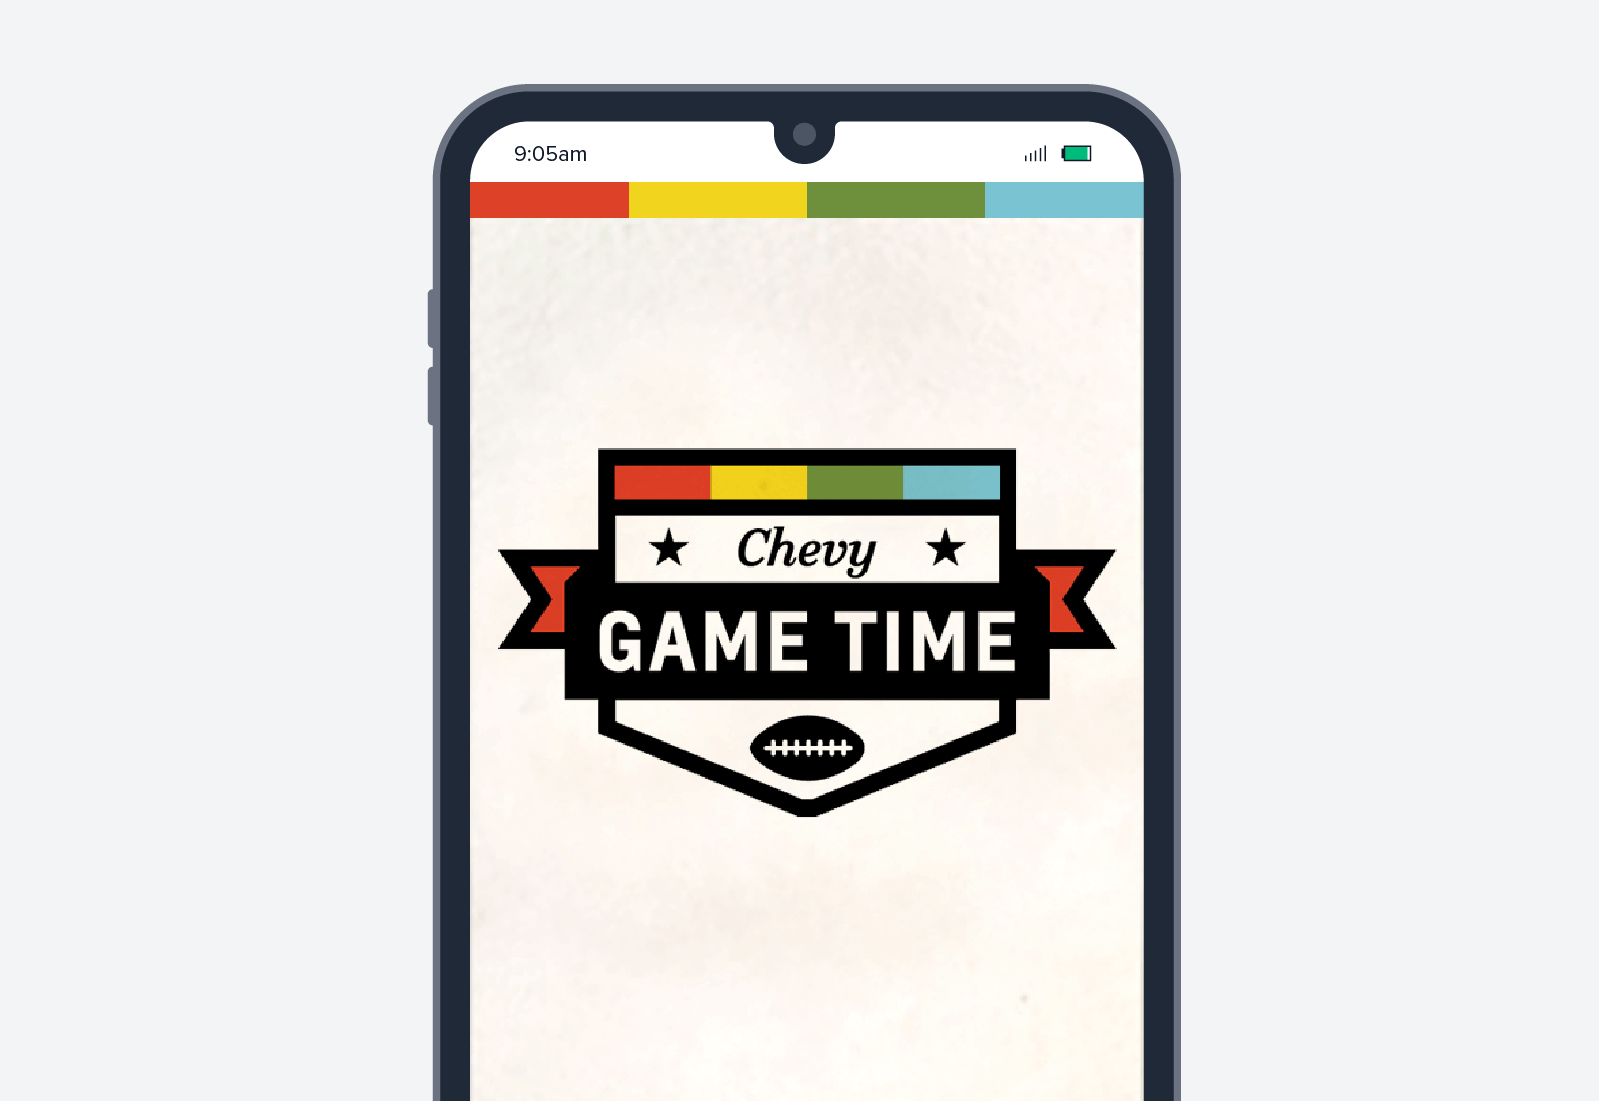 chevy mobile advertisement